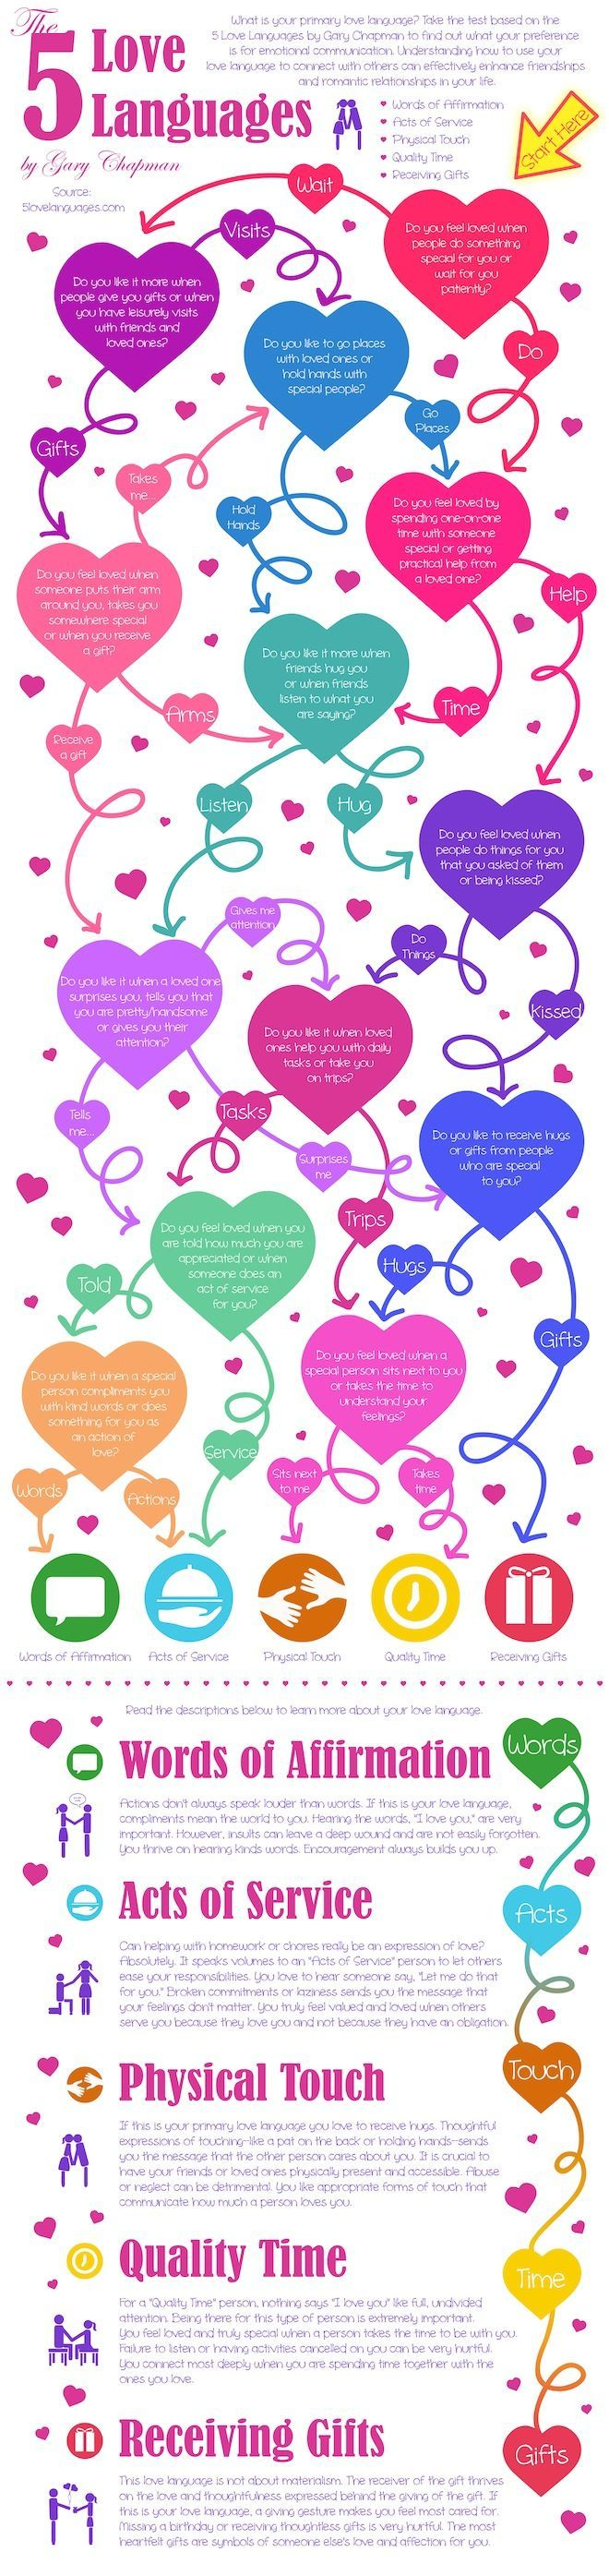 Love | Tipsographic | More love tips at www.tipsographic....